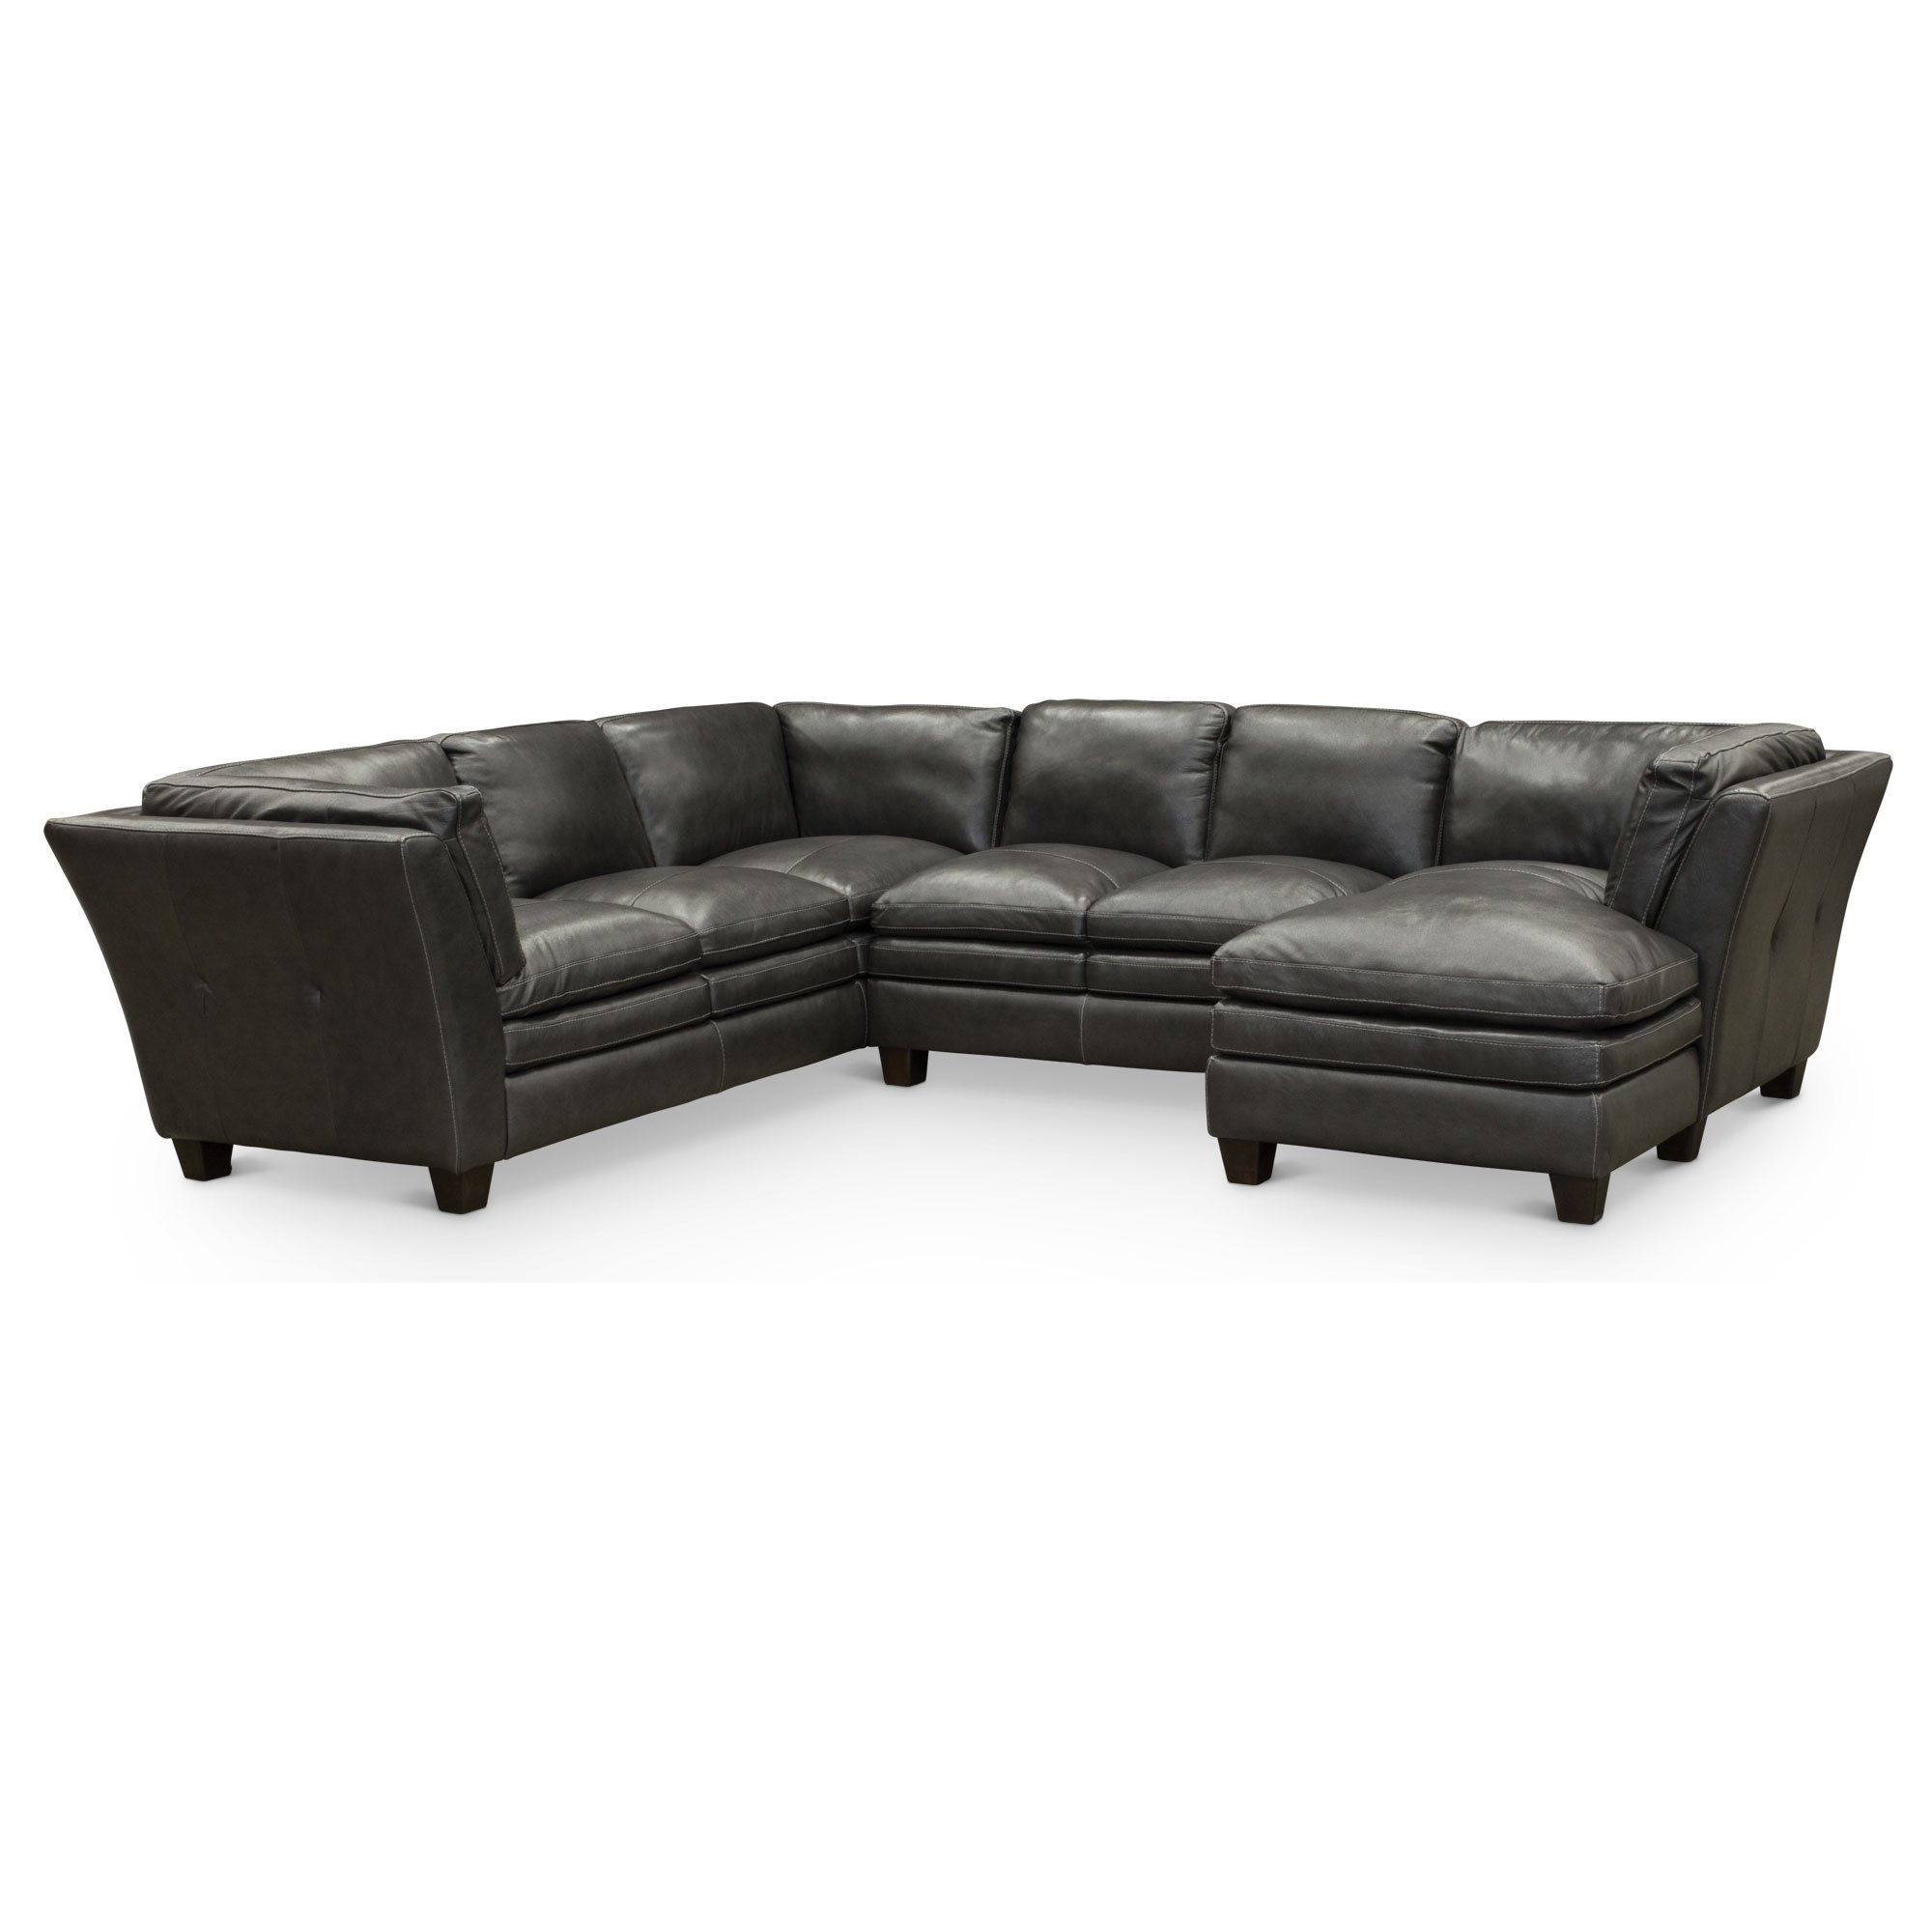 Ordinaire Contemporary Slate Gray Leather 3 Piece Sectional Sofa   Capri | RC Willey  Furniture Store